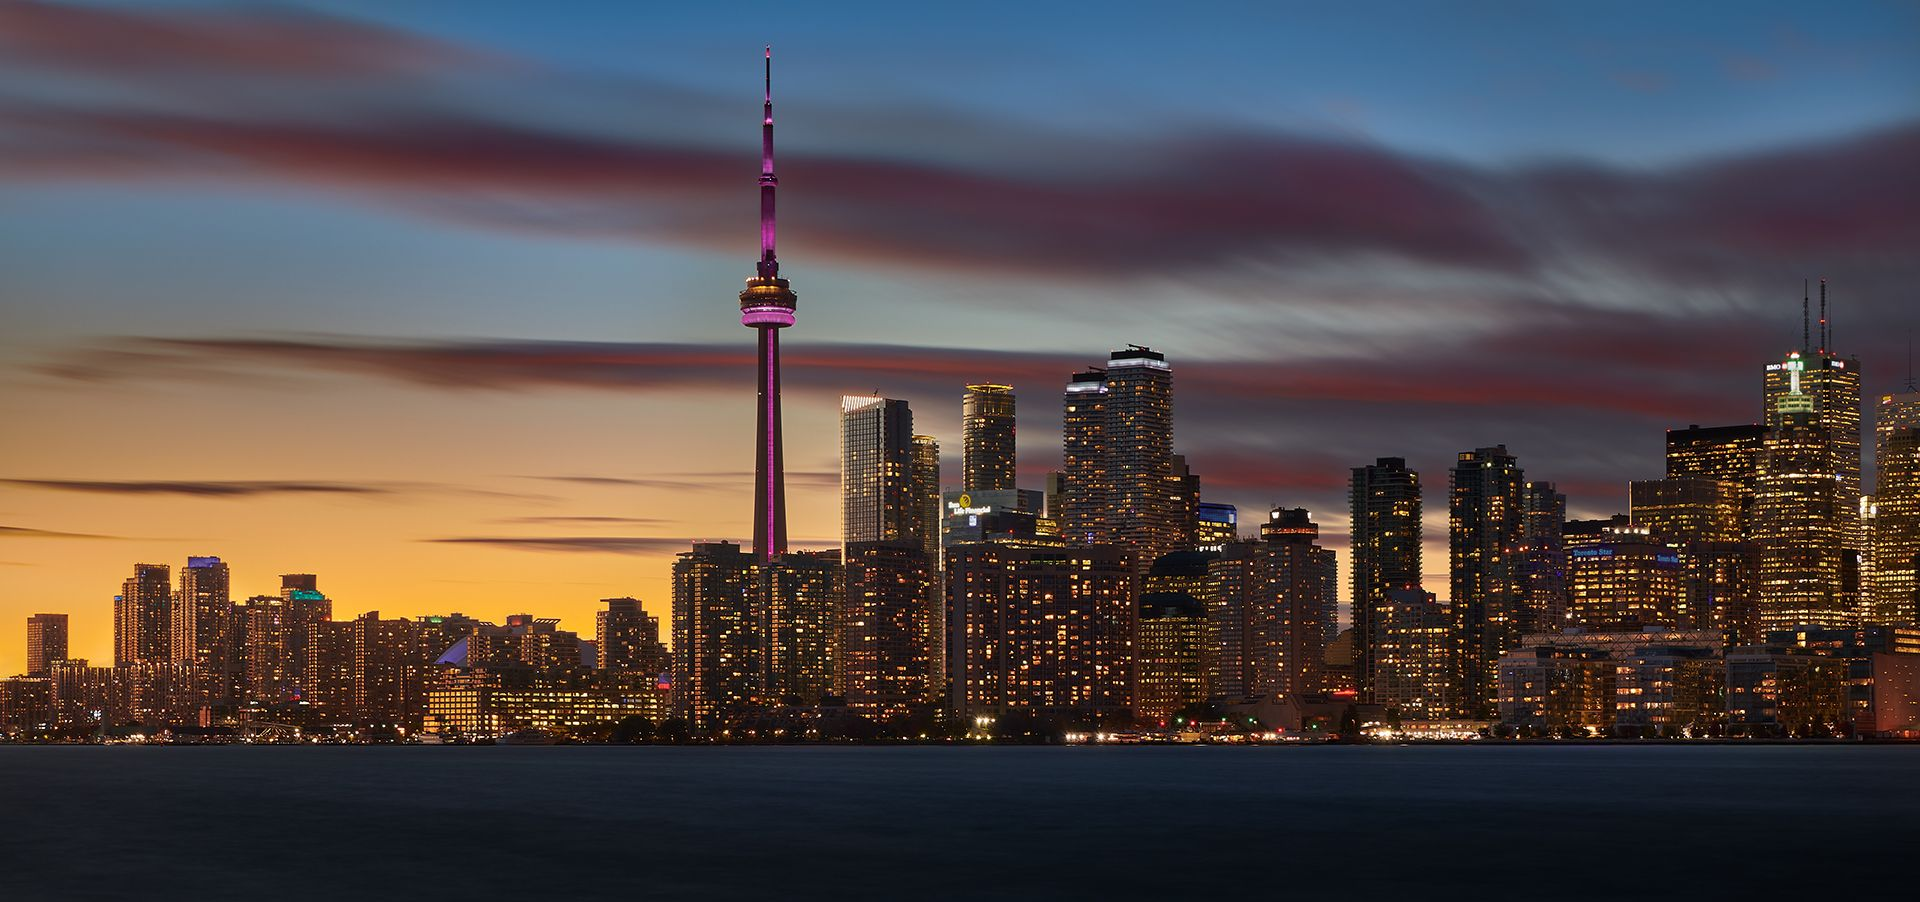 Mike Feraco – Toronto from Wards Island – HM